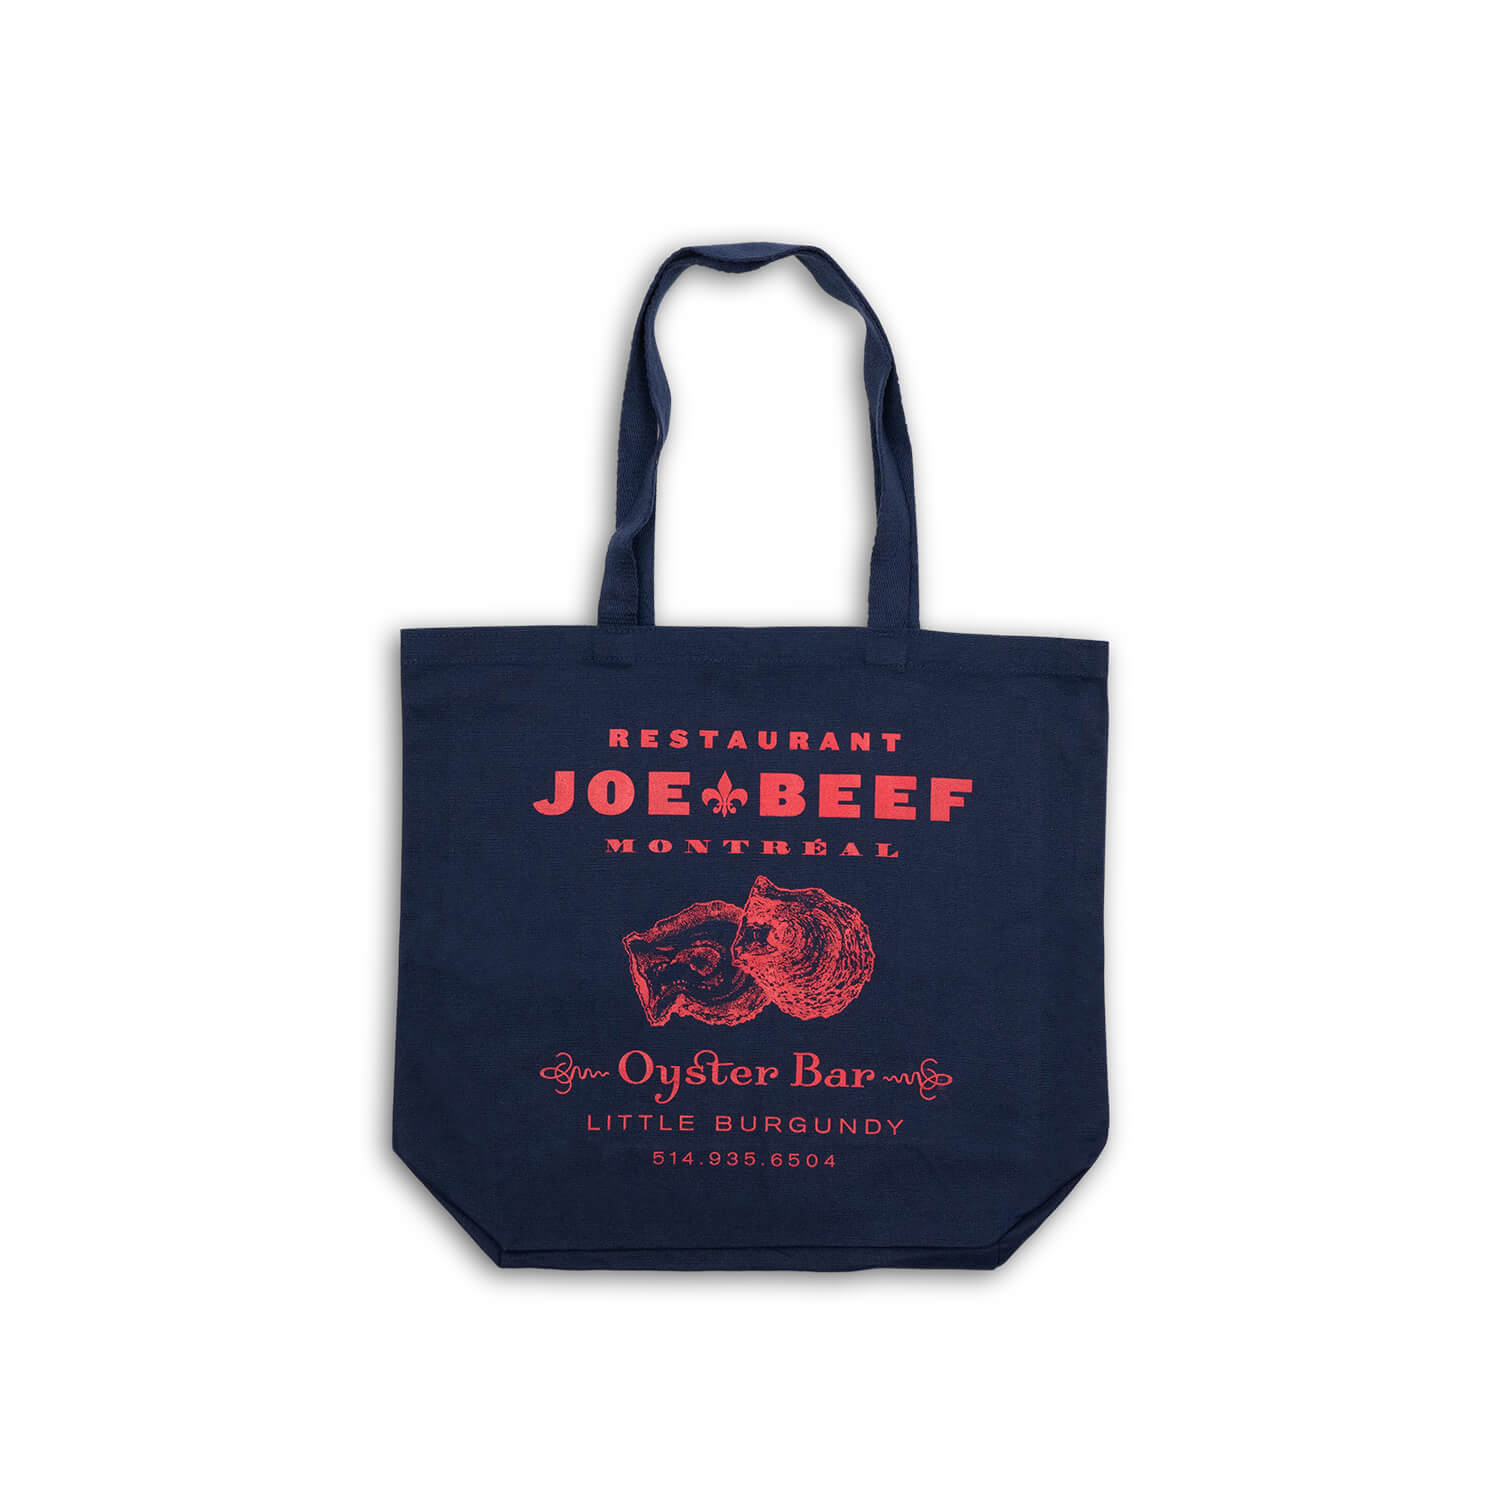 Joe Beef Oyster Bar Tote Bag